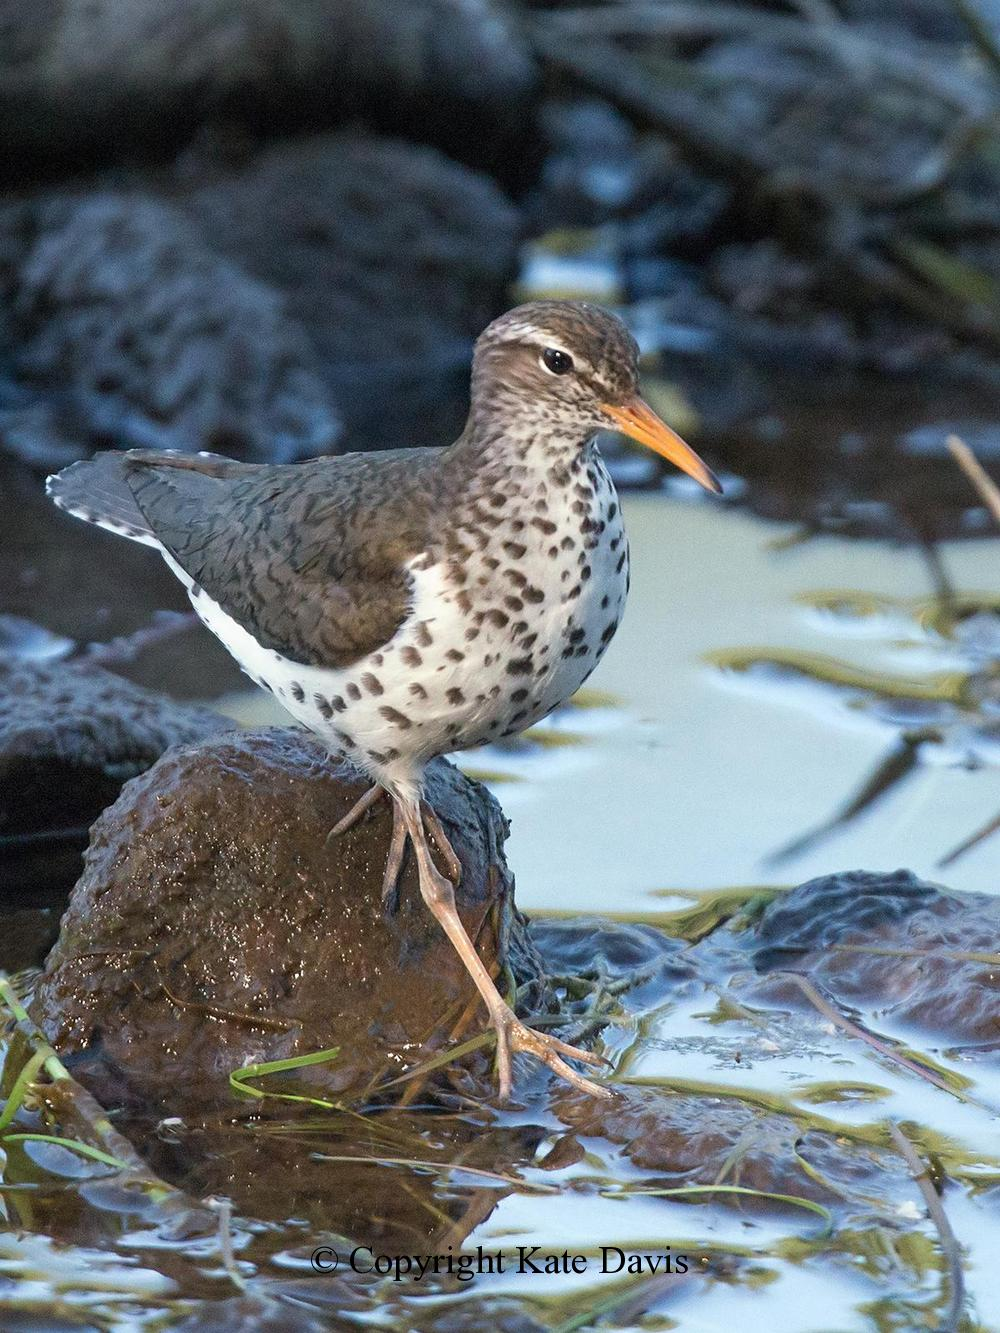 Song Bird Photos - Spotted Sandpiper in the Shallows - Shore Bird Photos - Spotted Sandpiper in the Shallows - A favorite Sandpiper photo